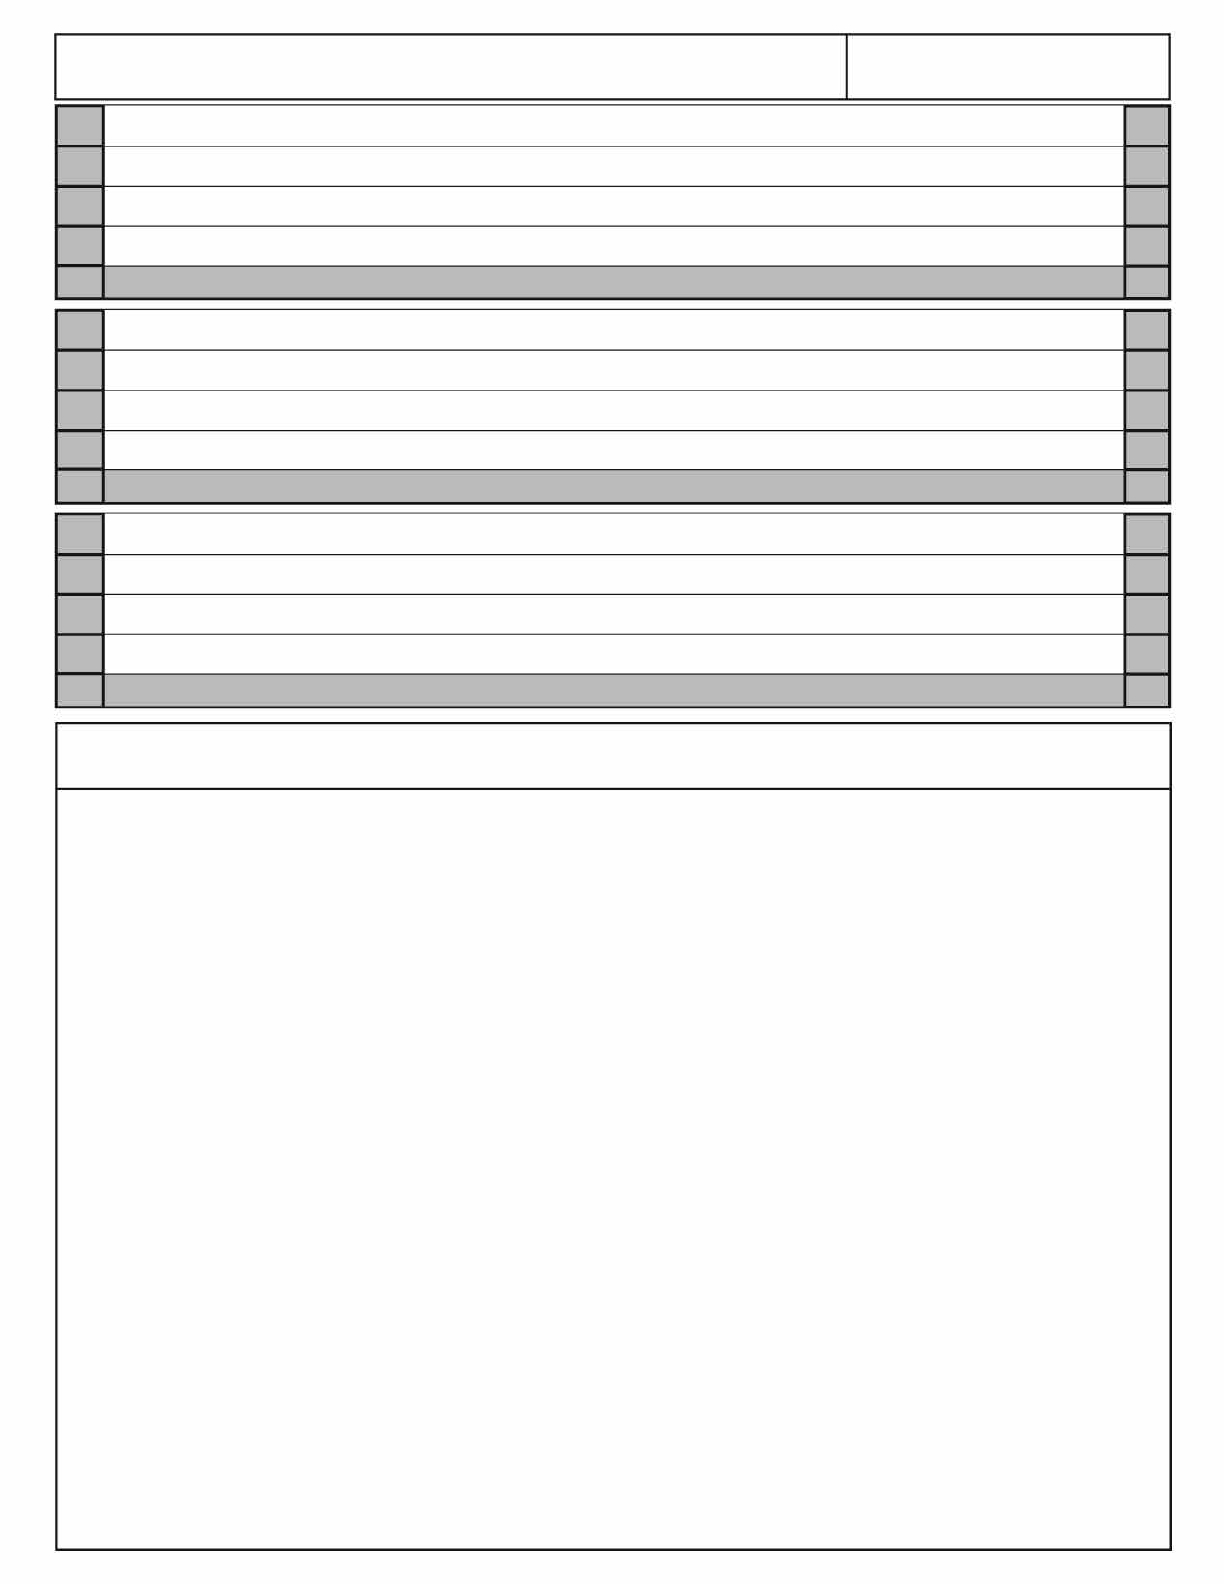 Free Printable Dollar Tree Job Application Form Page 2 - Free Printable Dollar Tree Application Form